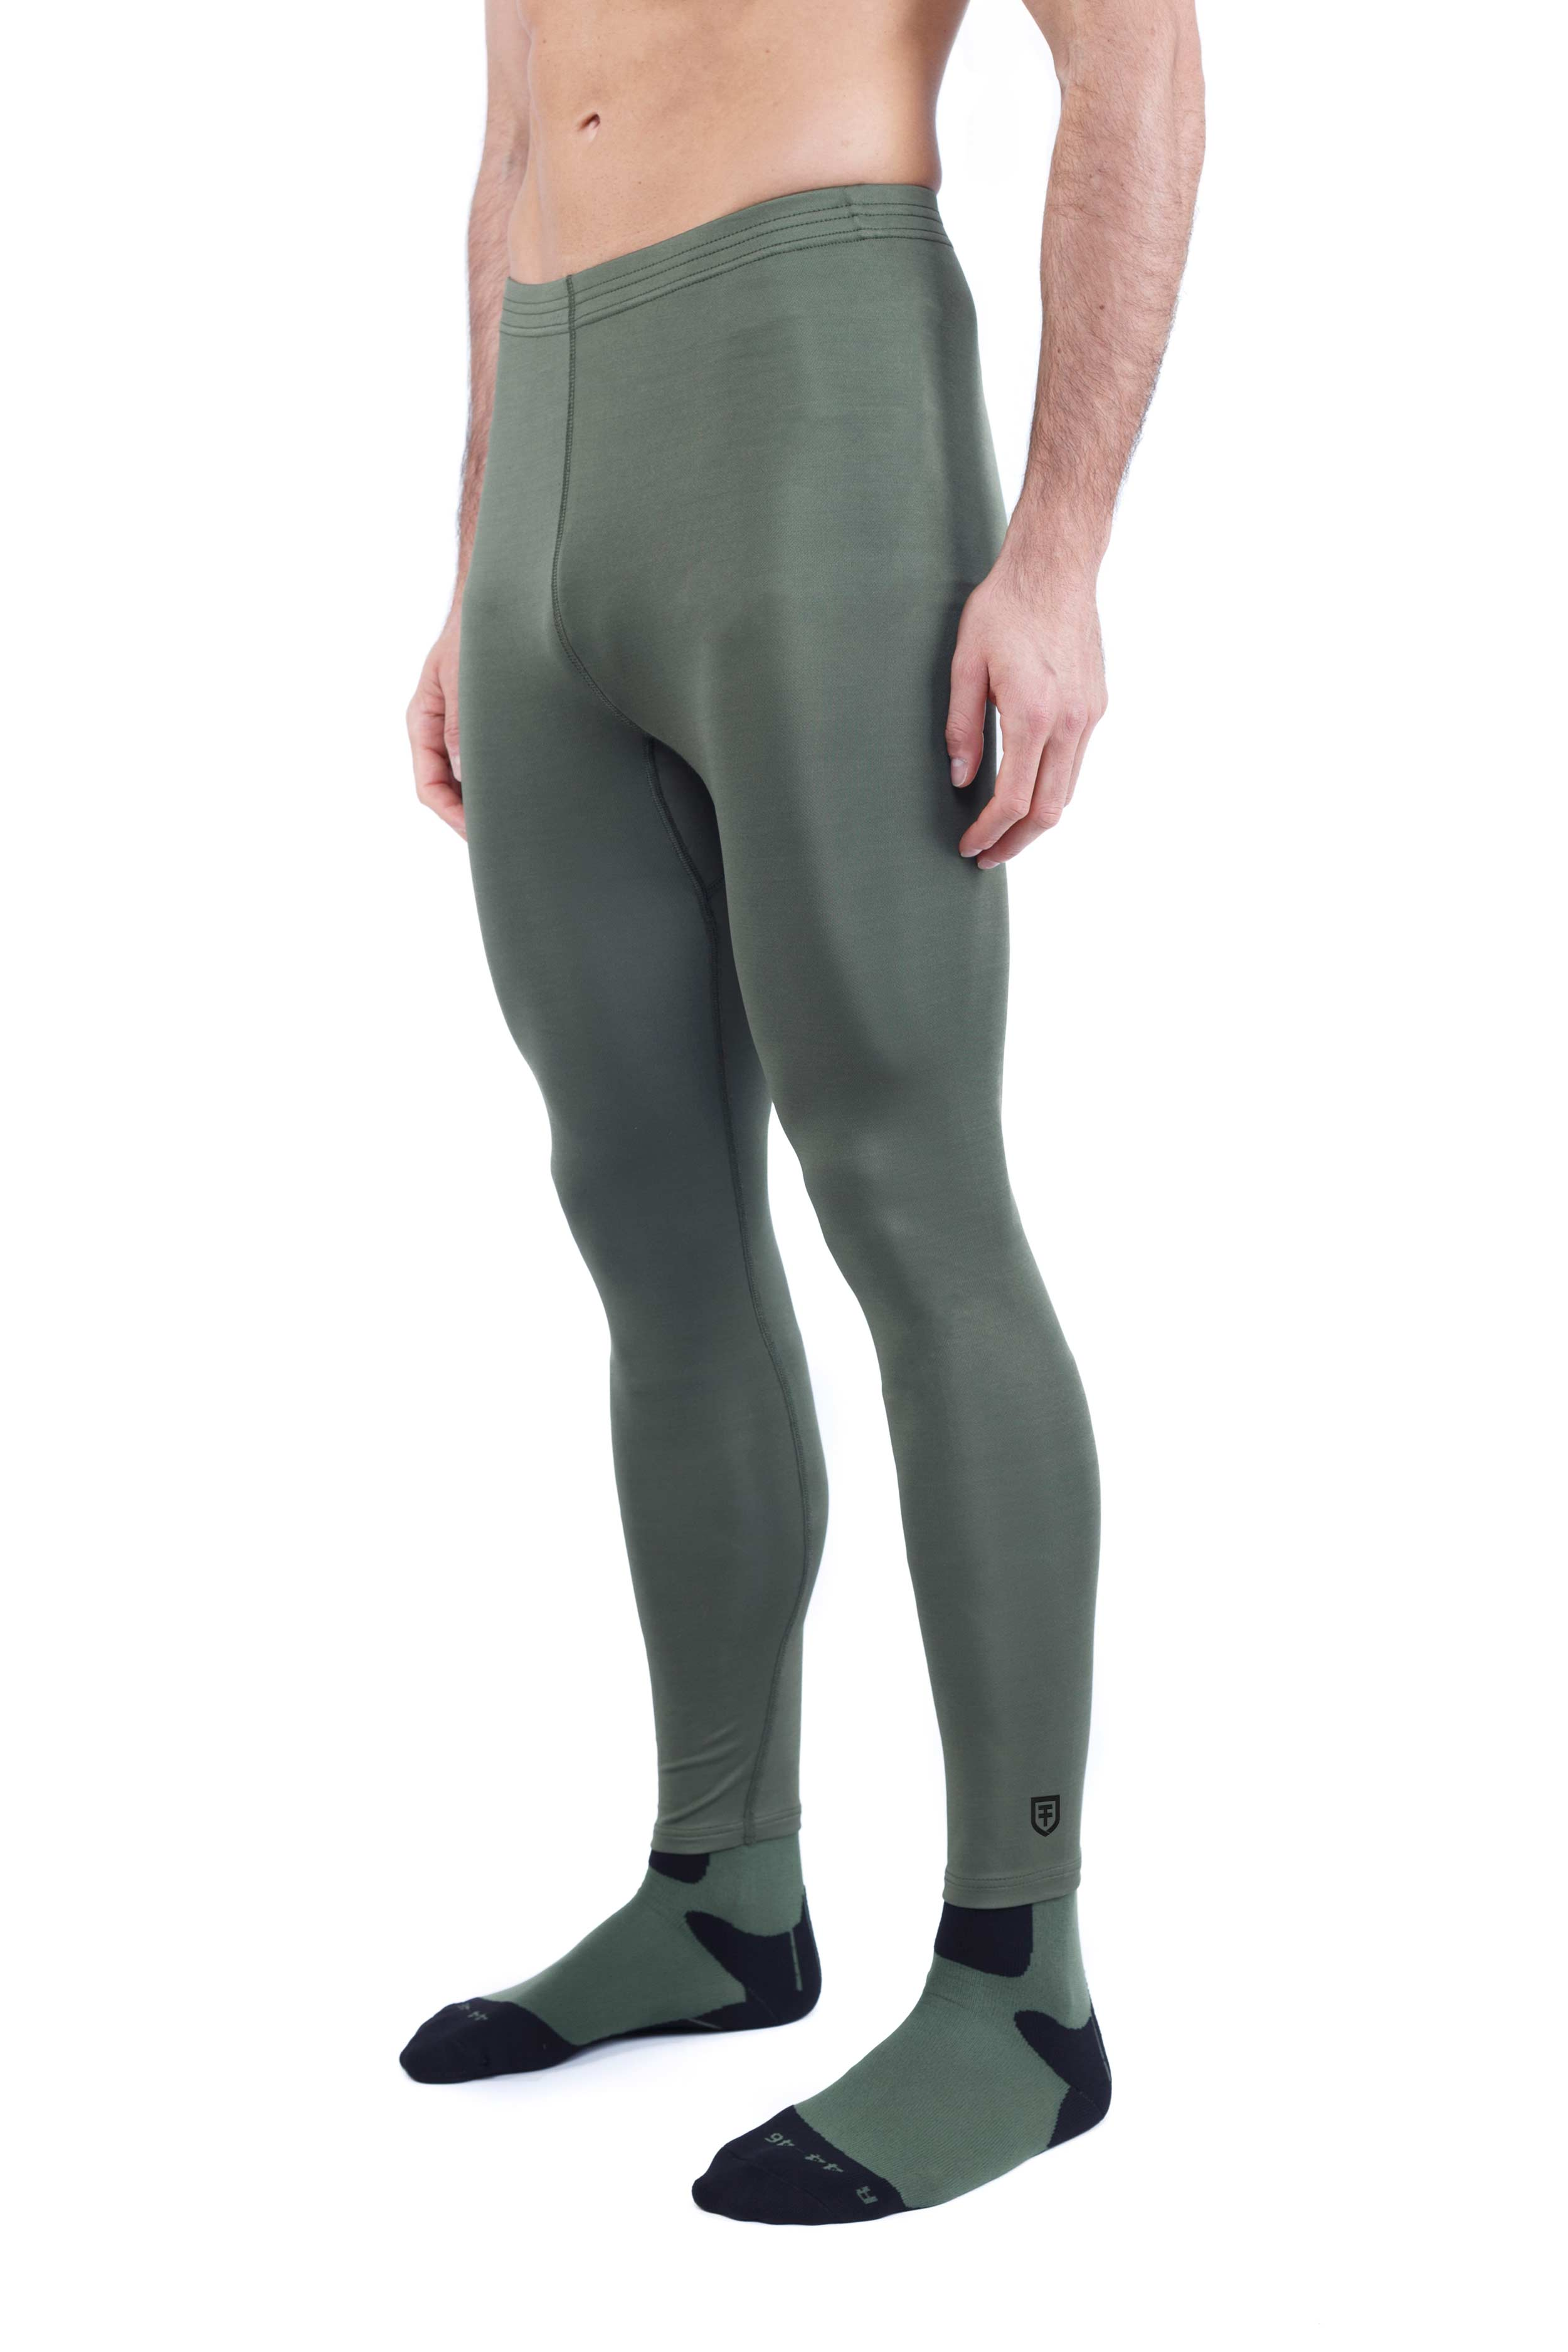 FIREPROOF THERMAL UNDERGARMENT